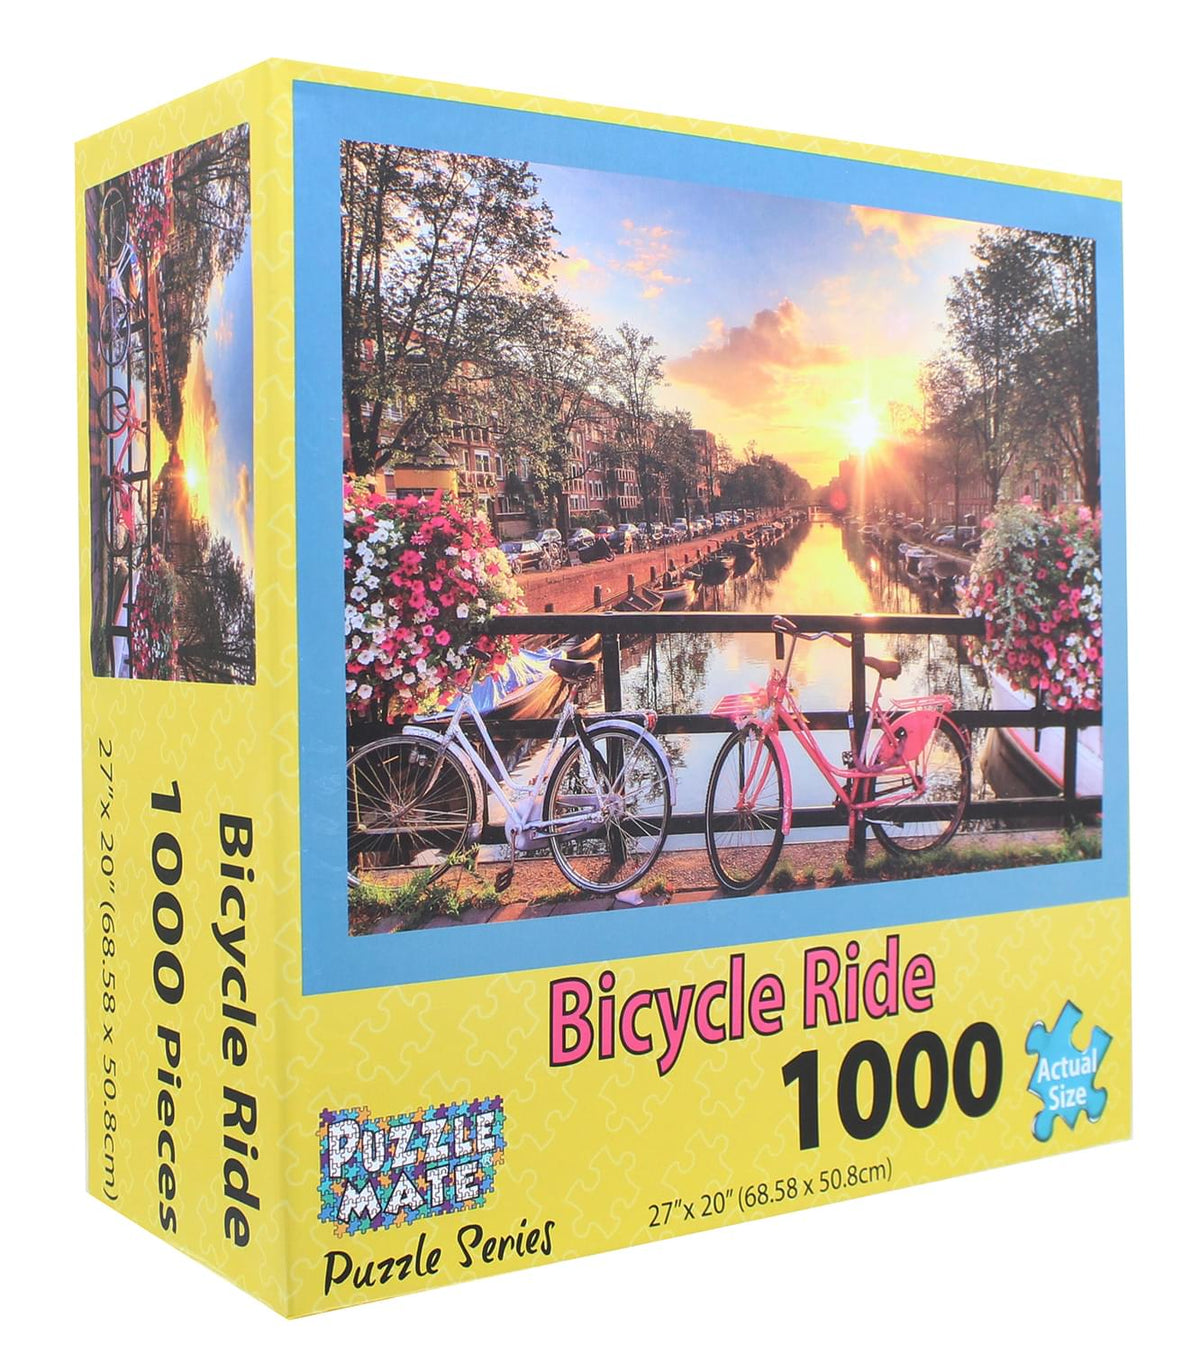 Bicycle Ride 1000 Piece Jigsaw Puzzle